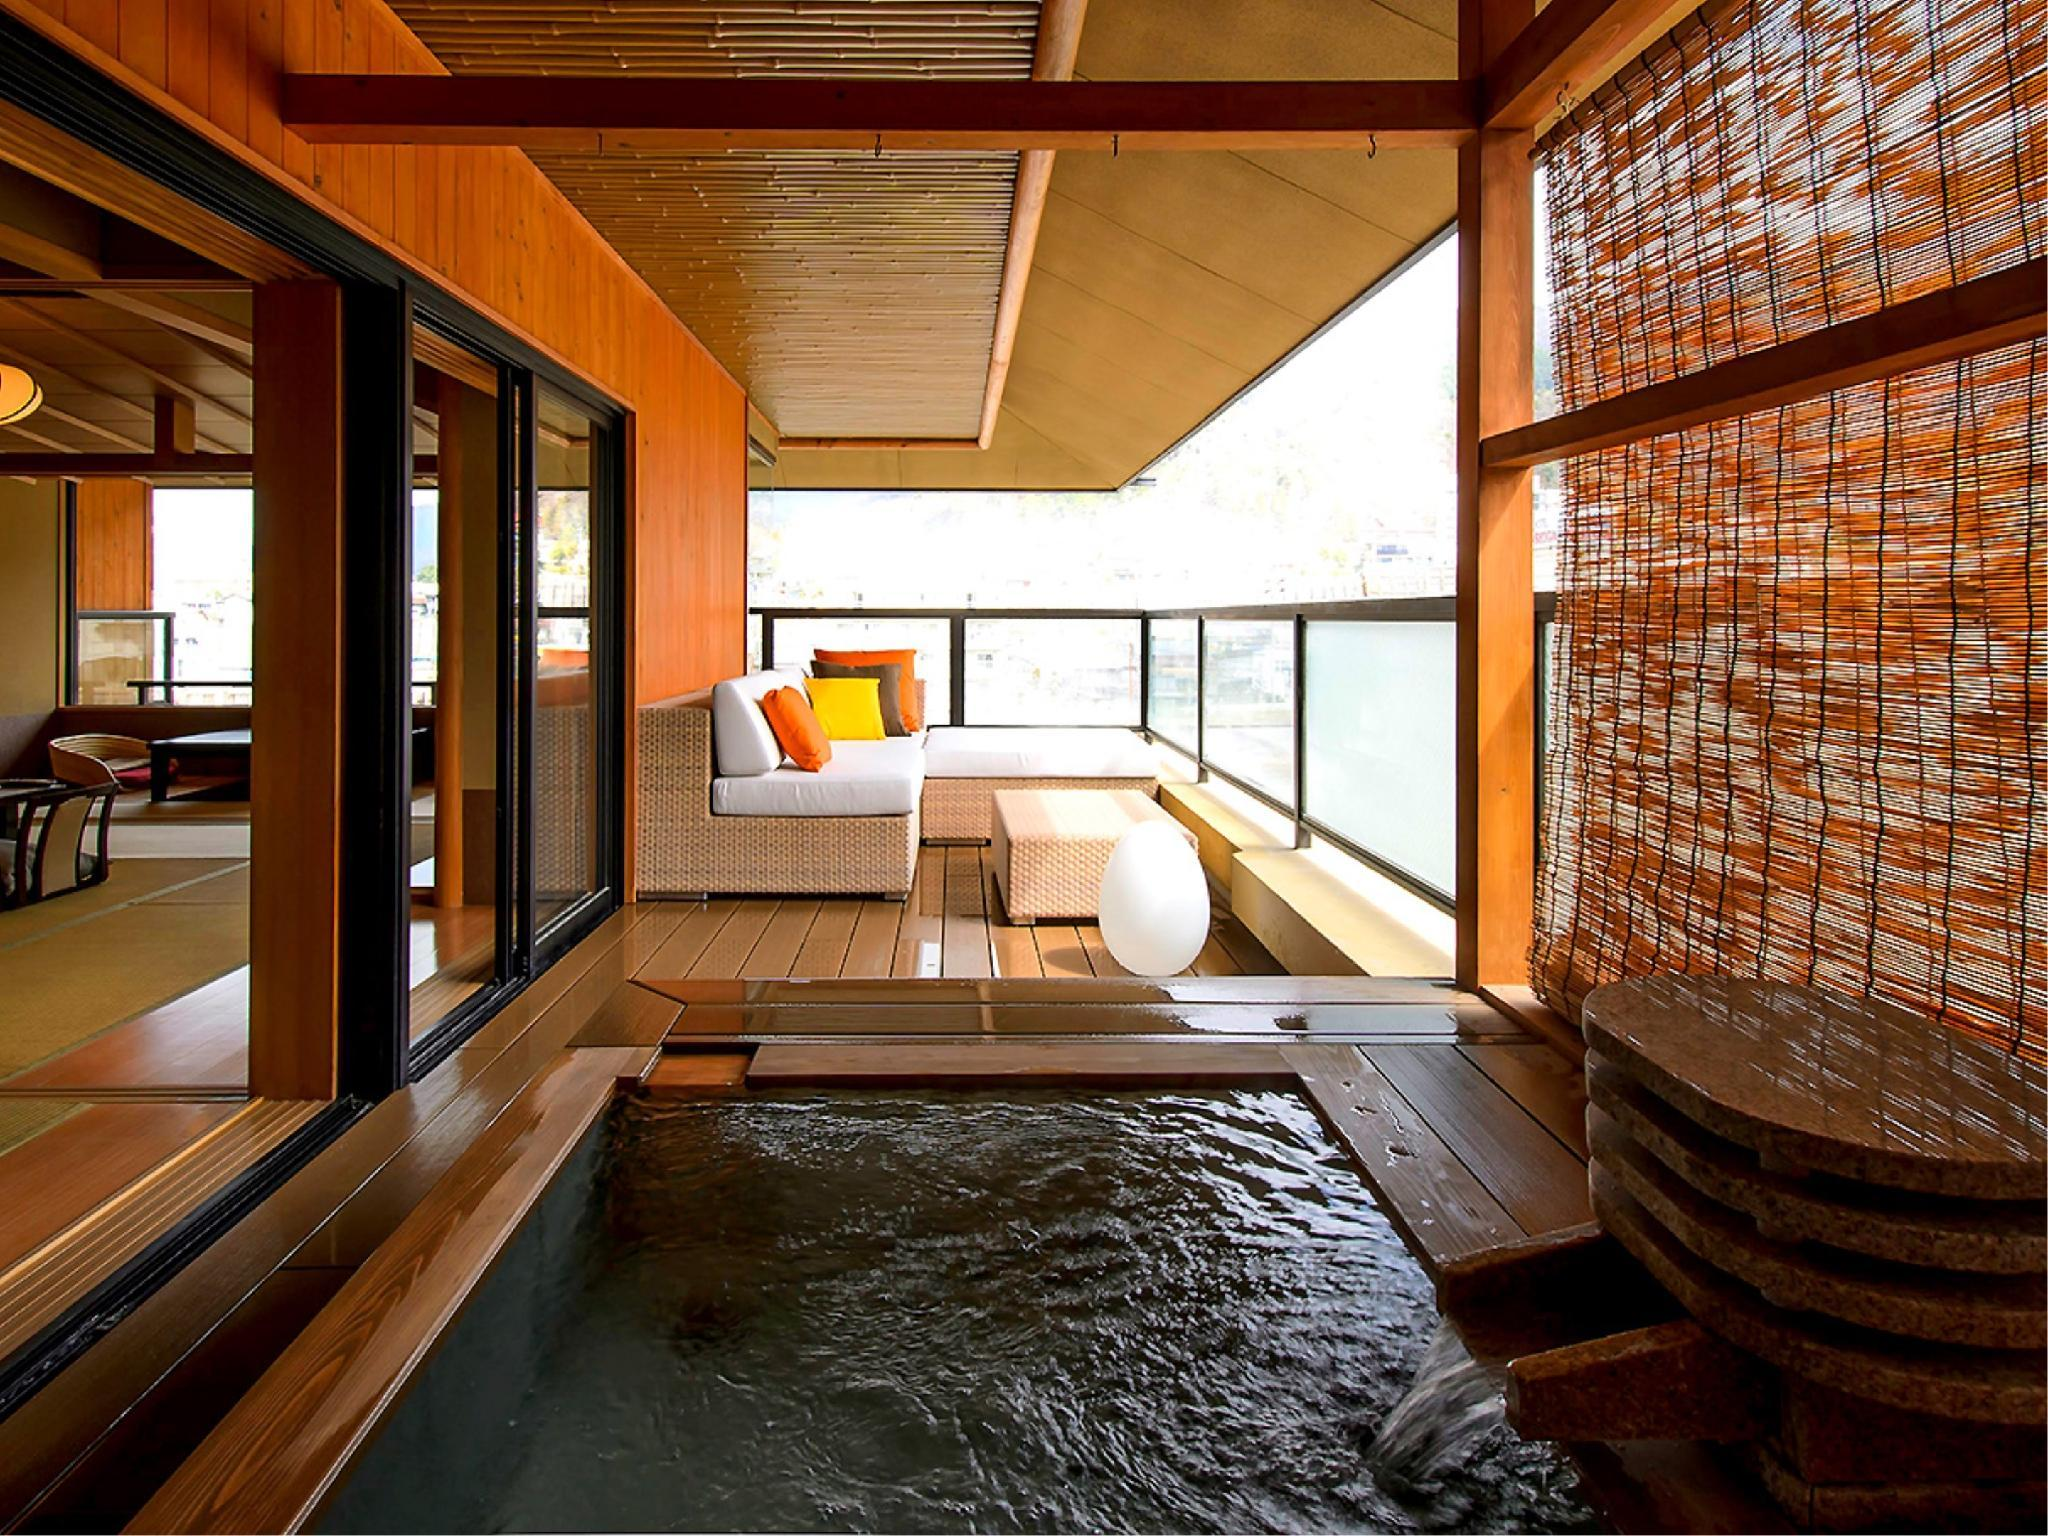 日式客房 - 有露天浴池 (Japanese Style Room with Open-Air Bath)